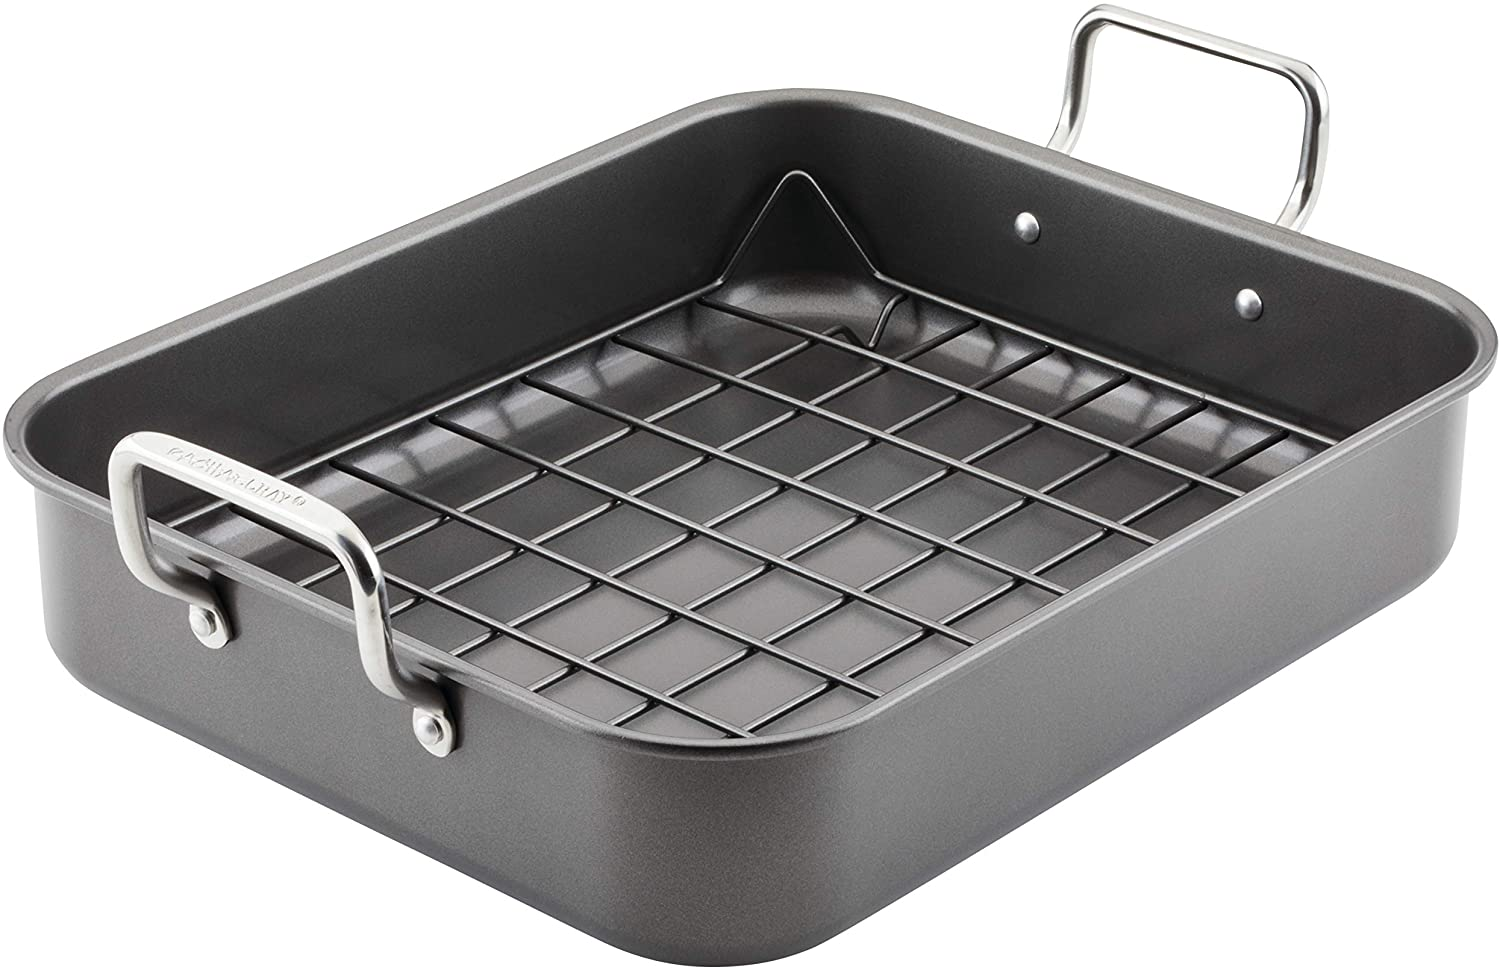 Rachael Ray Bakeware Nonstick Roaster/Roasting Pan with Reversible Rack, 13.5 Inch, Gray